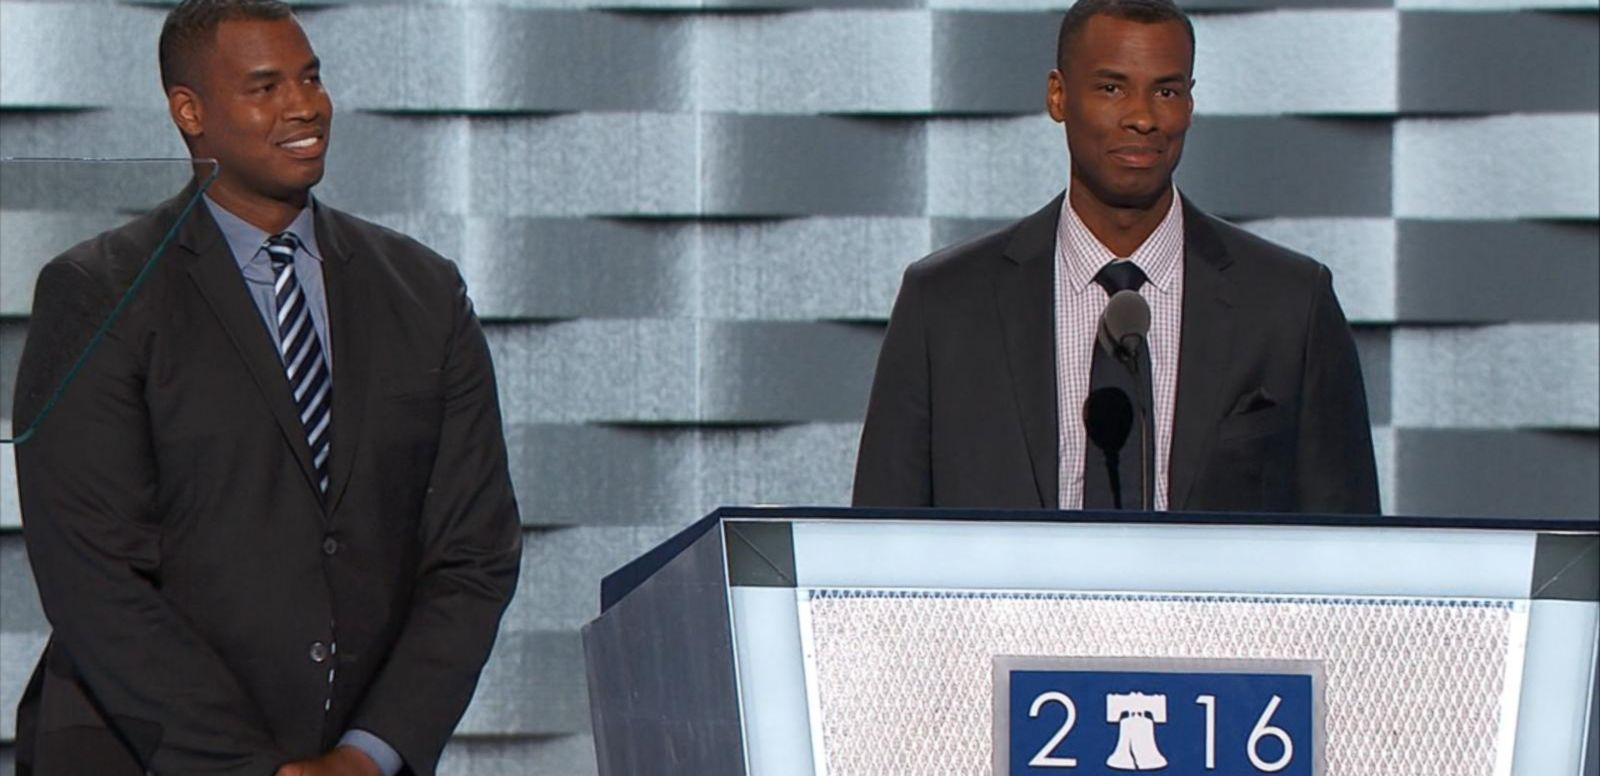 VIDEO: Jason Collins: 'Choice for Continued Progress Is Clear'